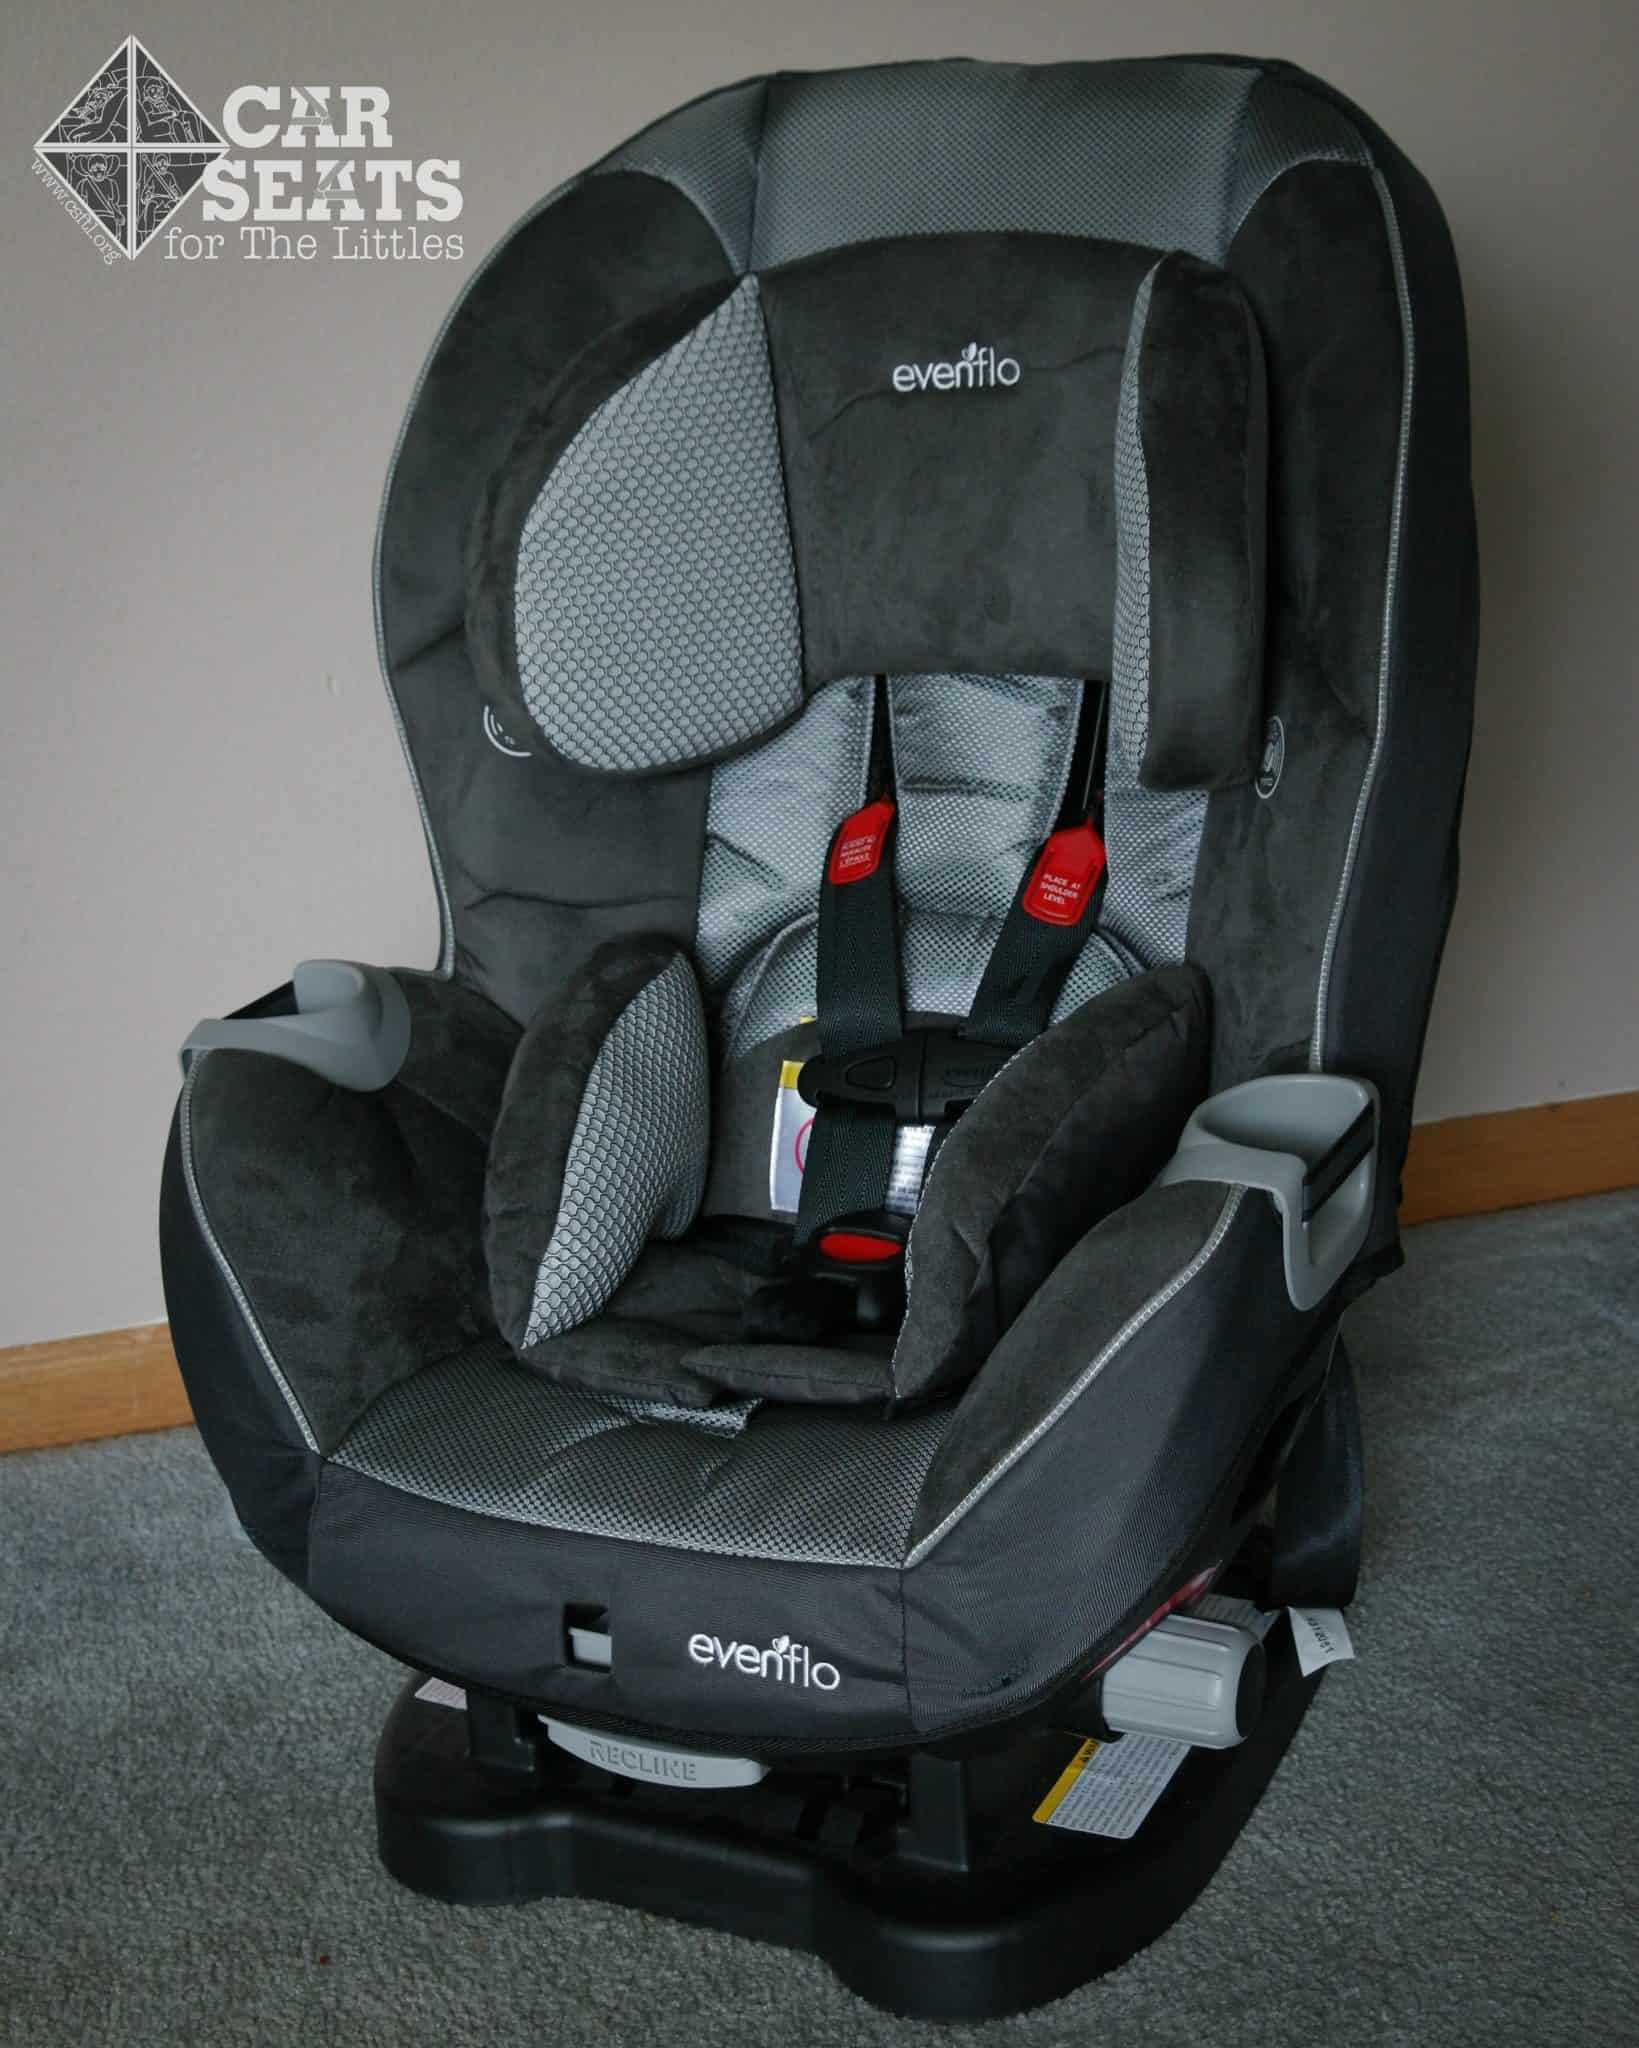 car seats for the littles evenflo triumph reviewevenflo triumph review car seats for the littles. Black Bedroom Furniture Sets. Home Design Ideas